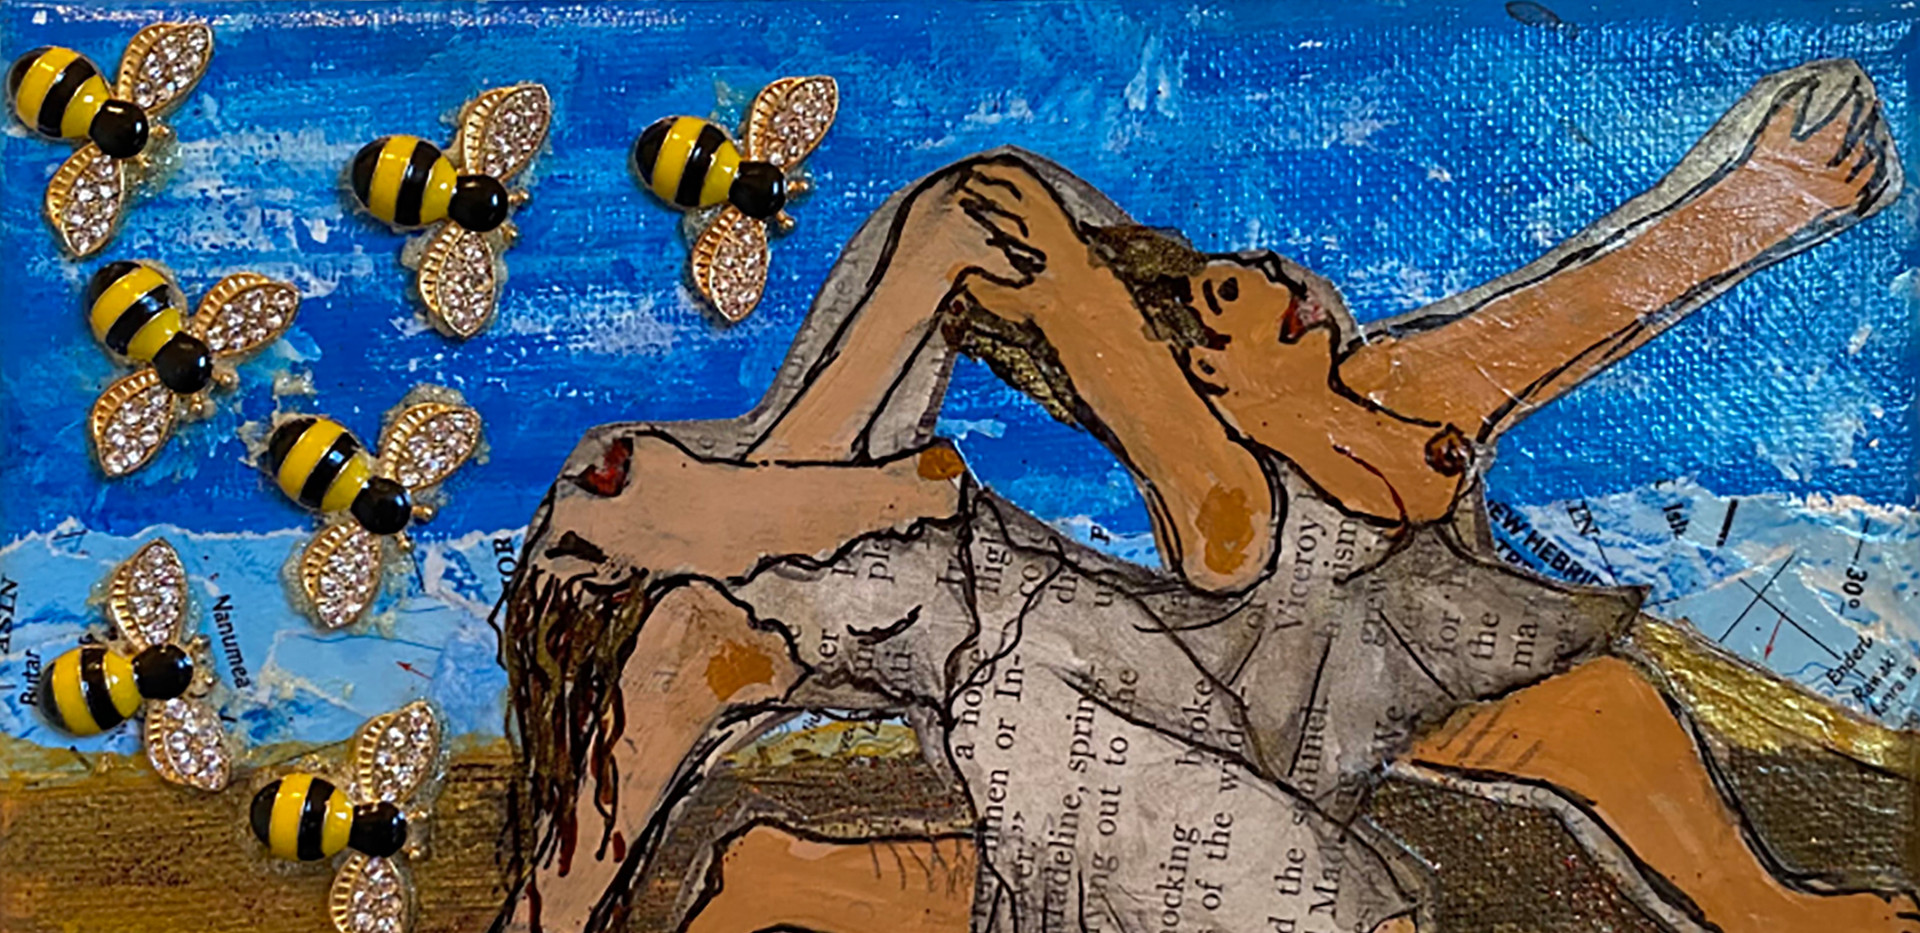 Two Women Running Away from Giant Bees (A Pablo Parody)  by B.Z.Smith